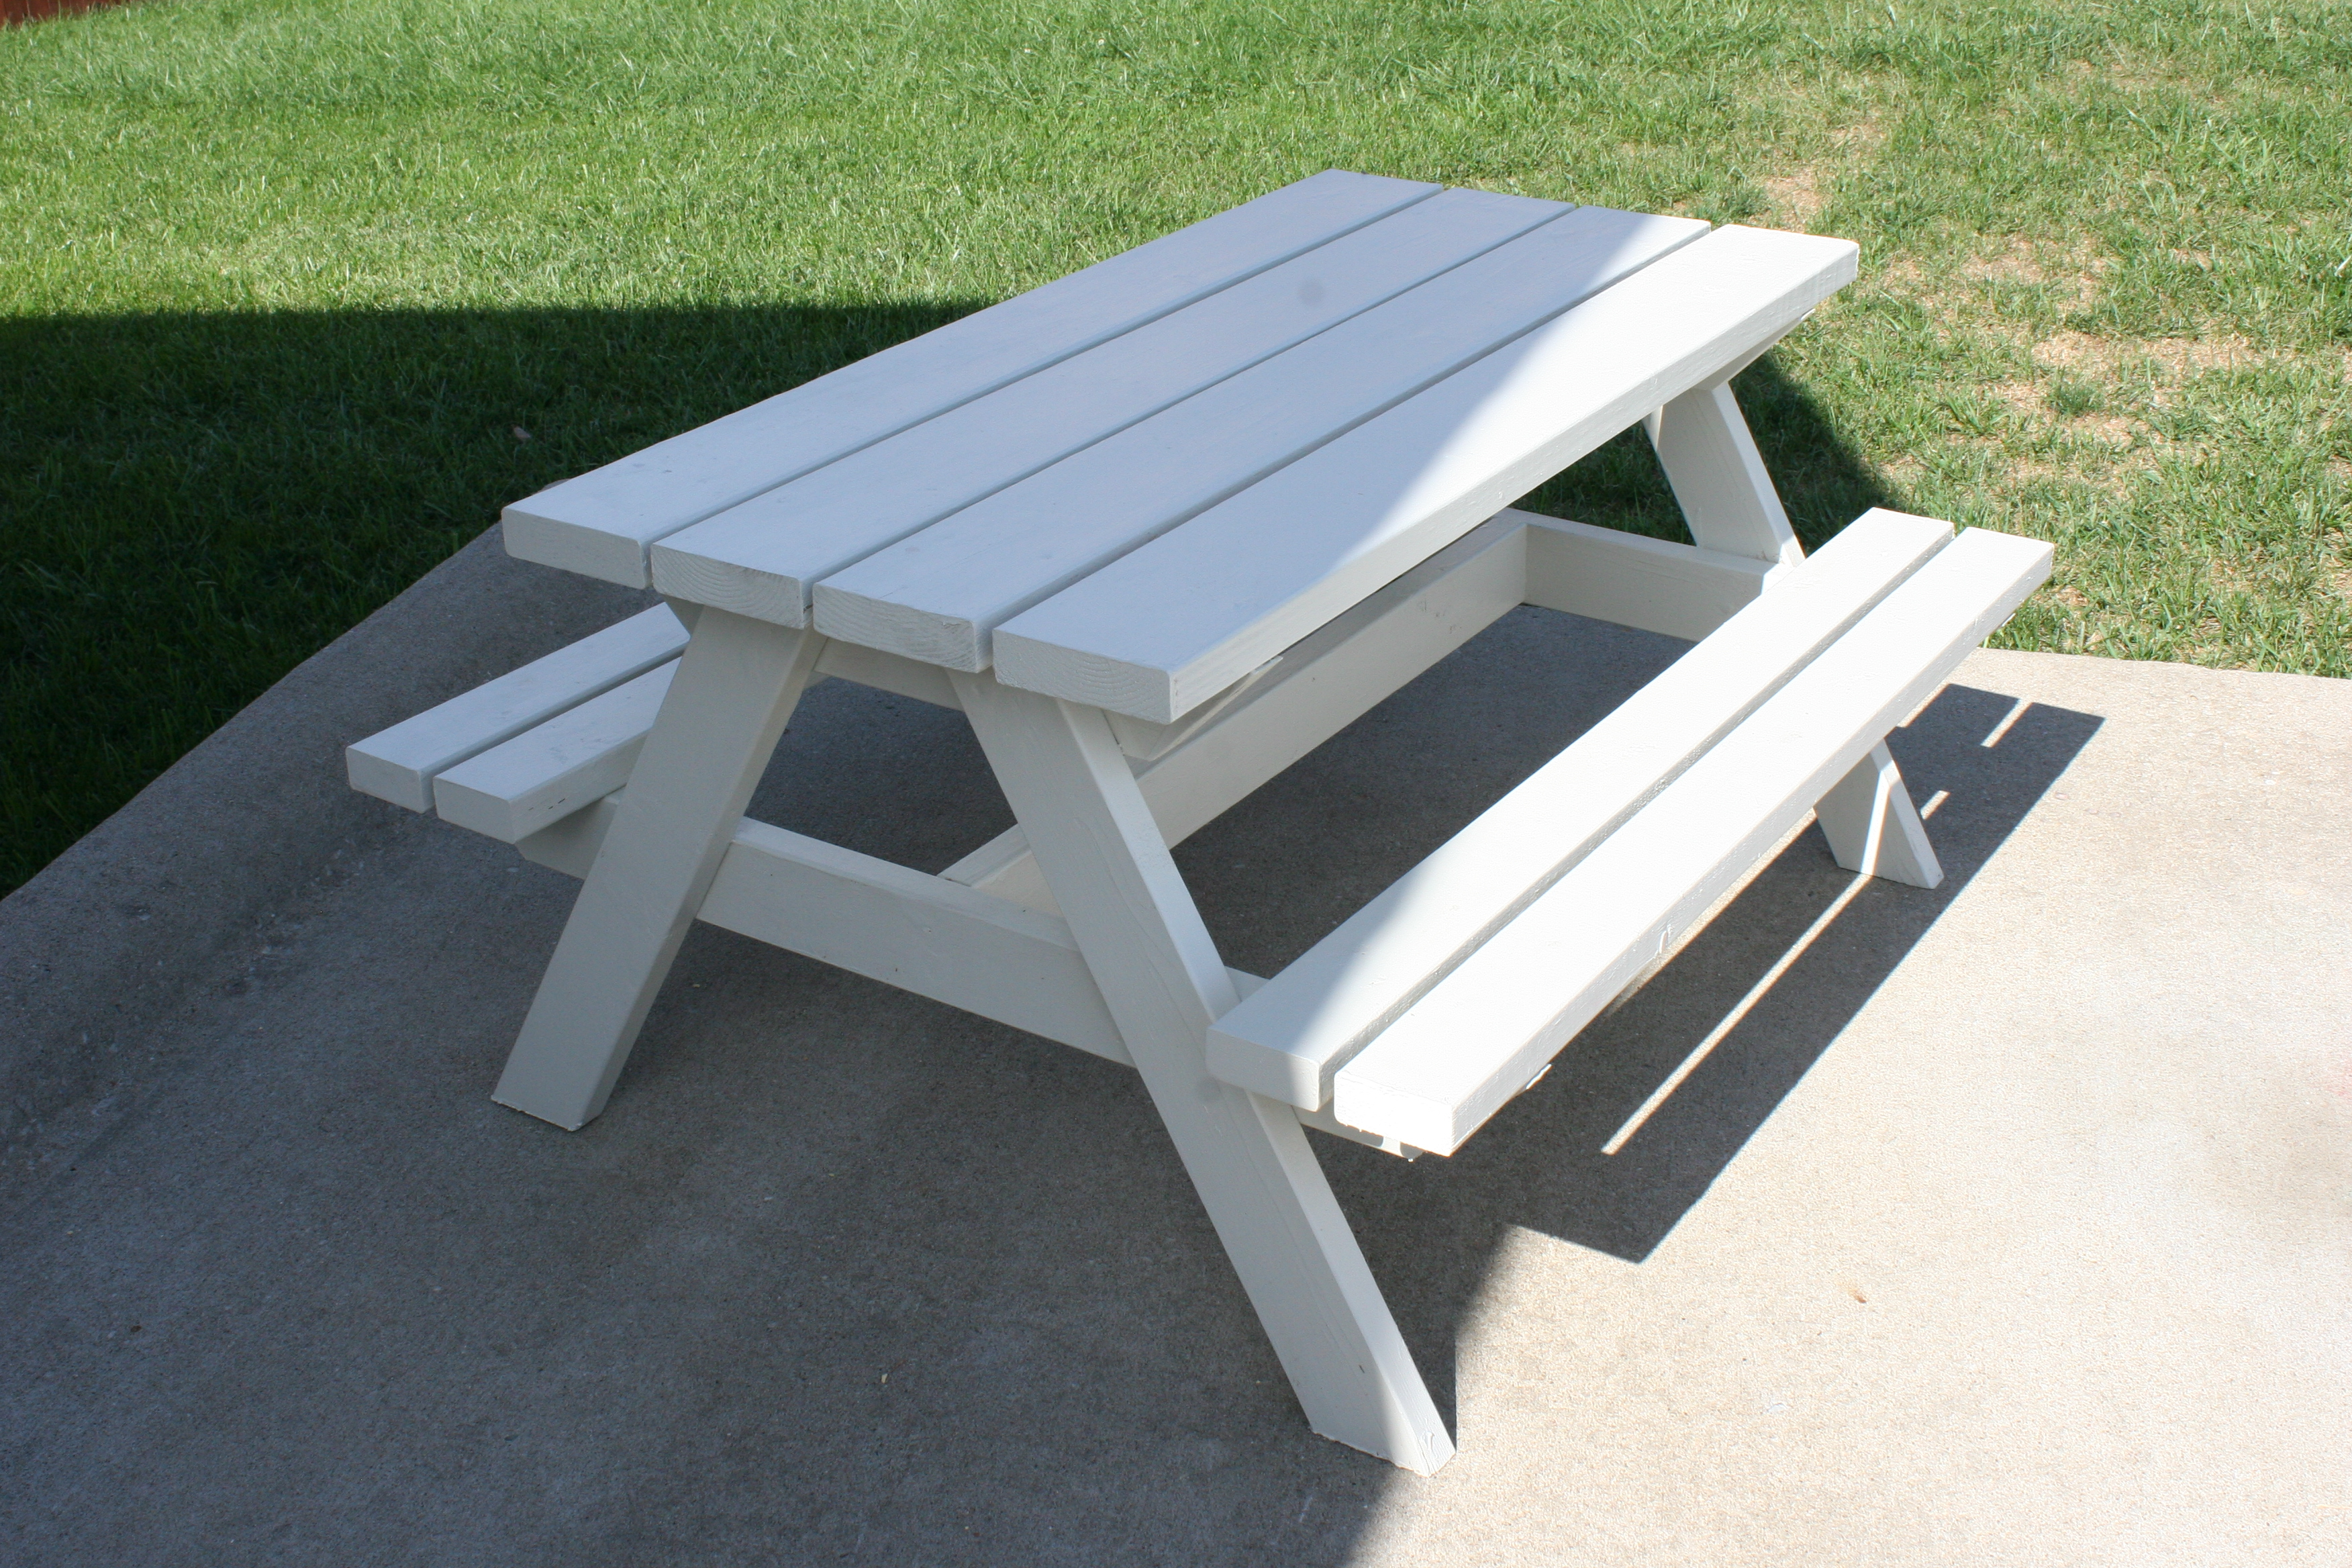 Bigger kid s picnic table living peacefully with children for Pallet picnic table plans